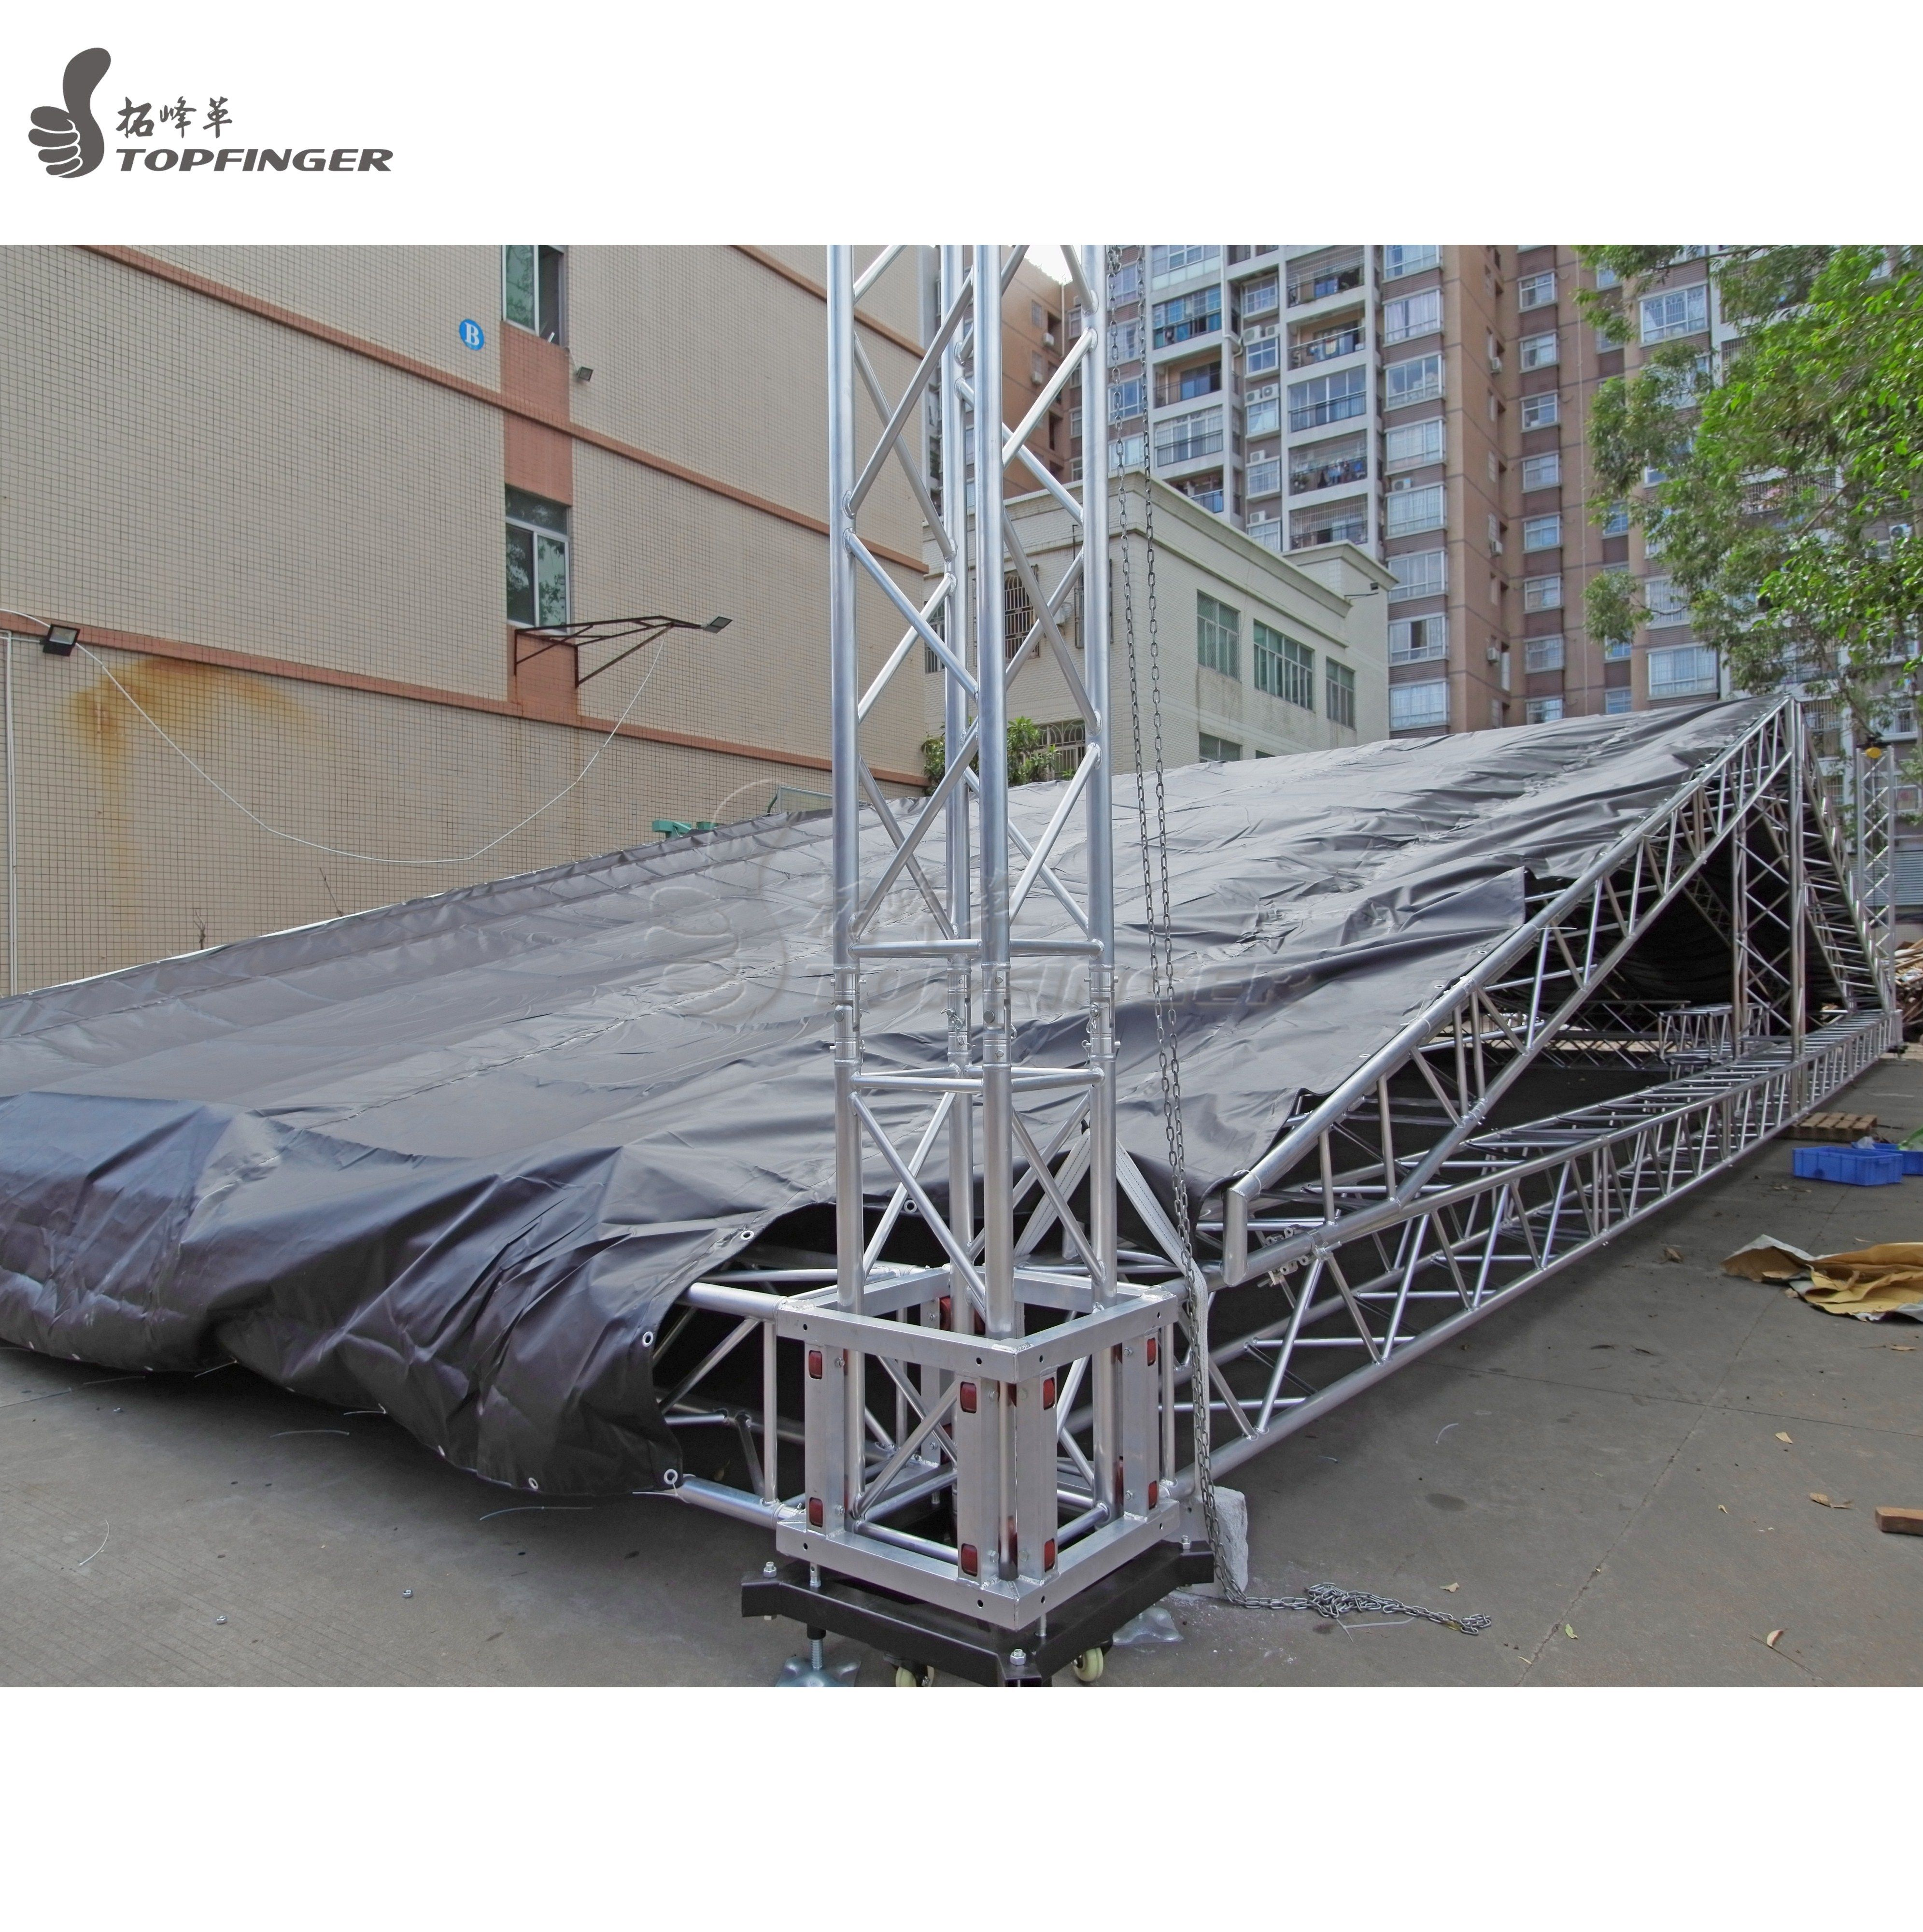 Truss Roof Cover Black Canvas Material With Customized Size To Meet The Requirements Email Grace Topfinger Roof Truss Design Window Grill Design Roof Trusses